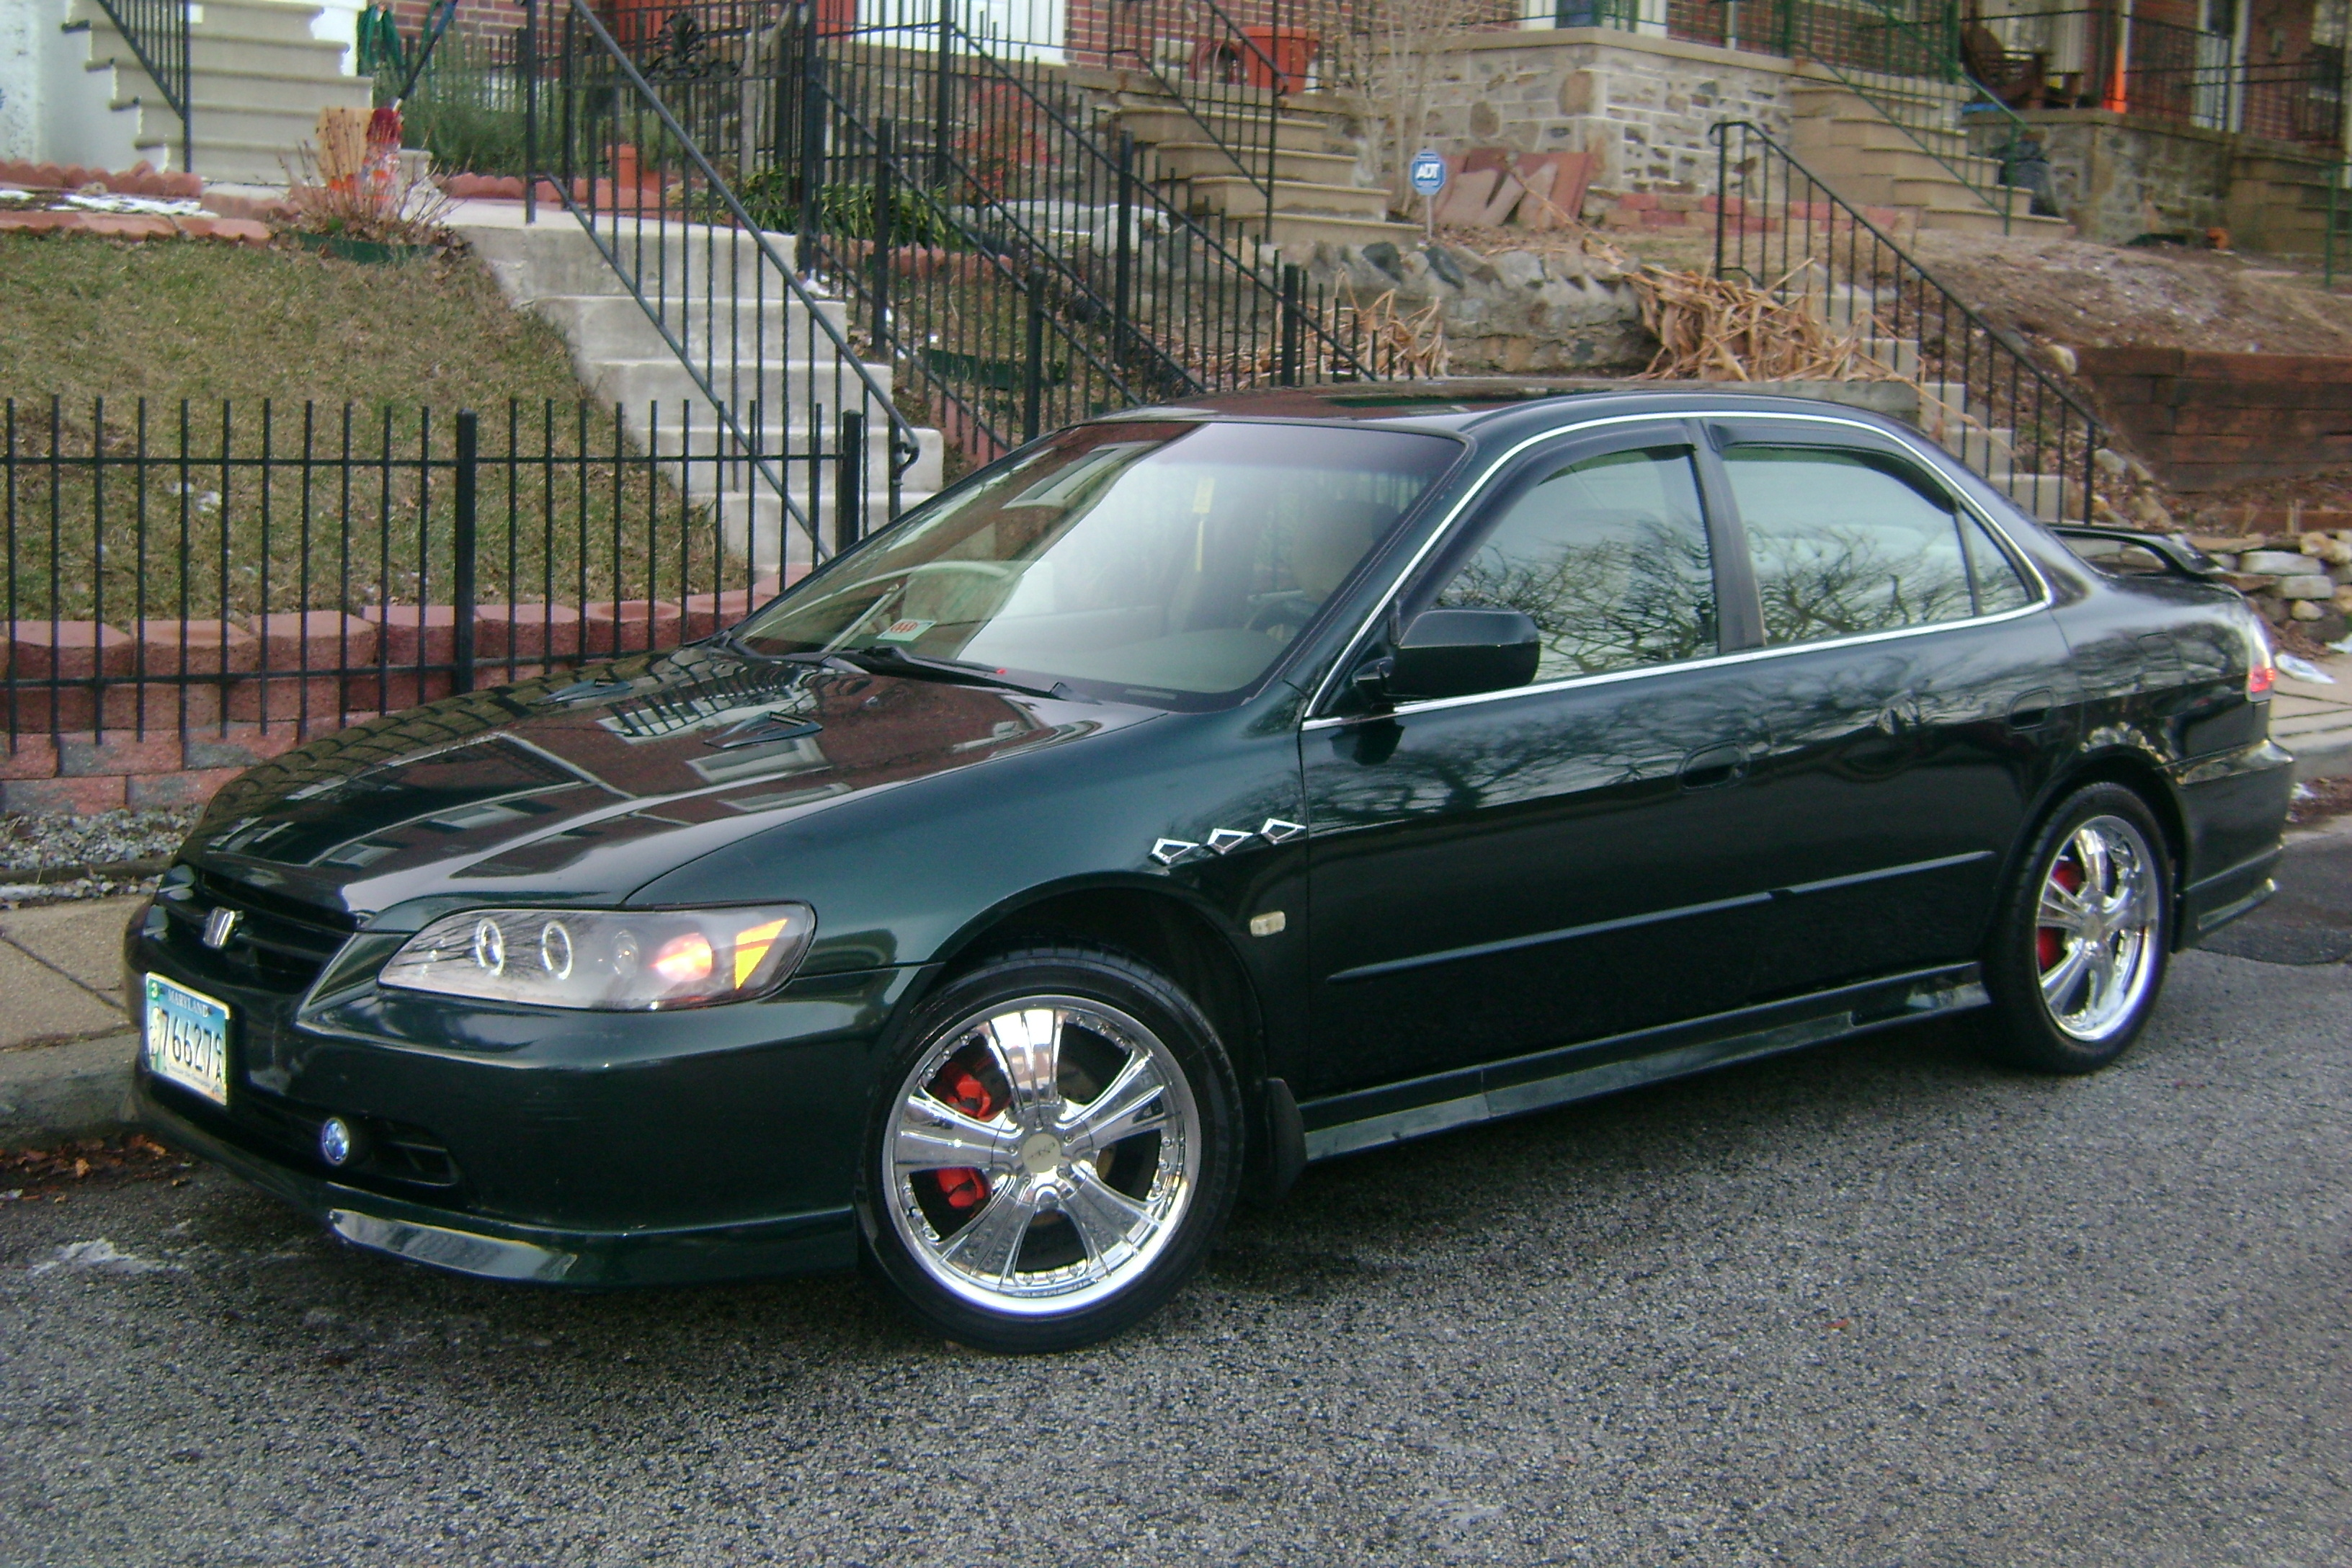 Bull_002 2000 Honda Accord 12420066